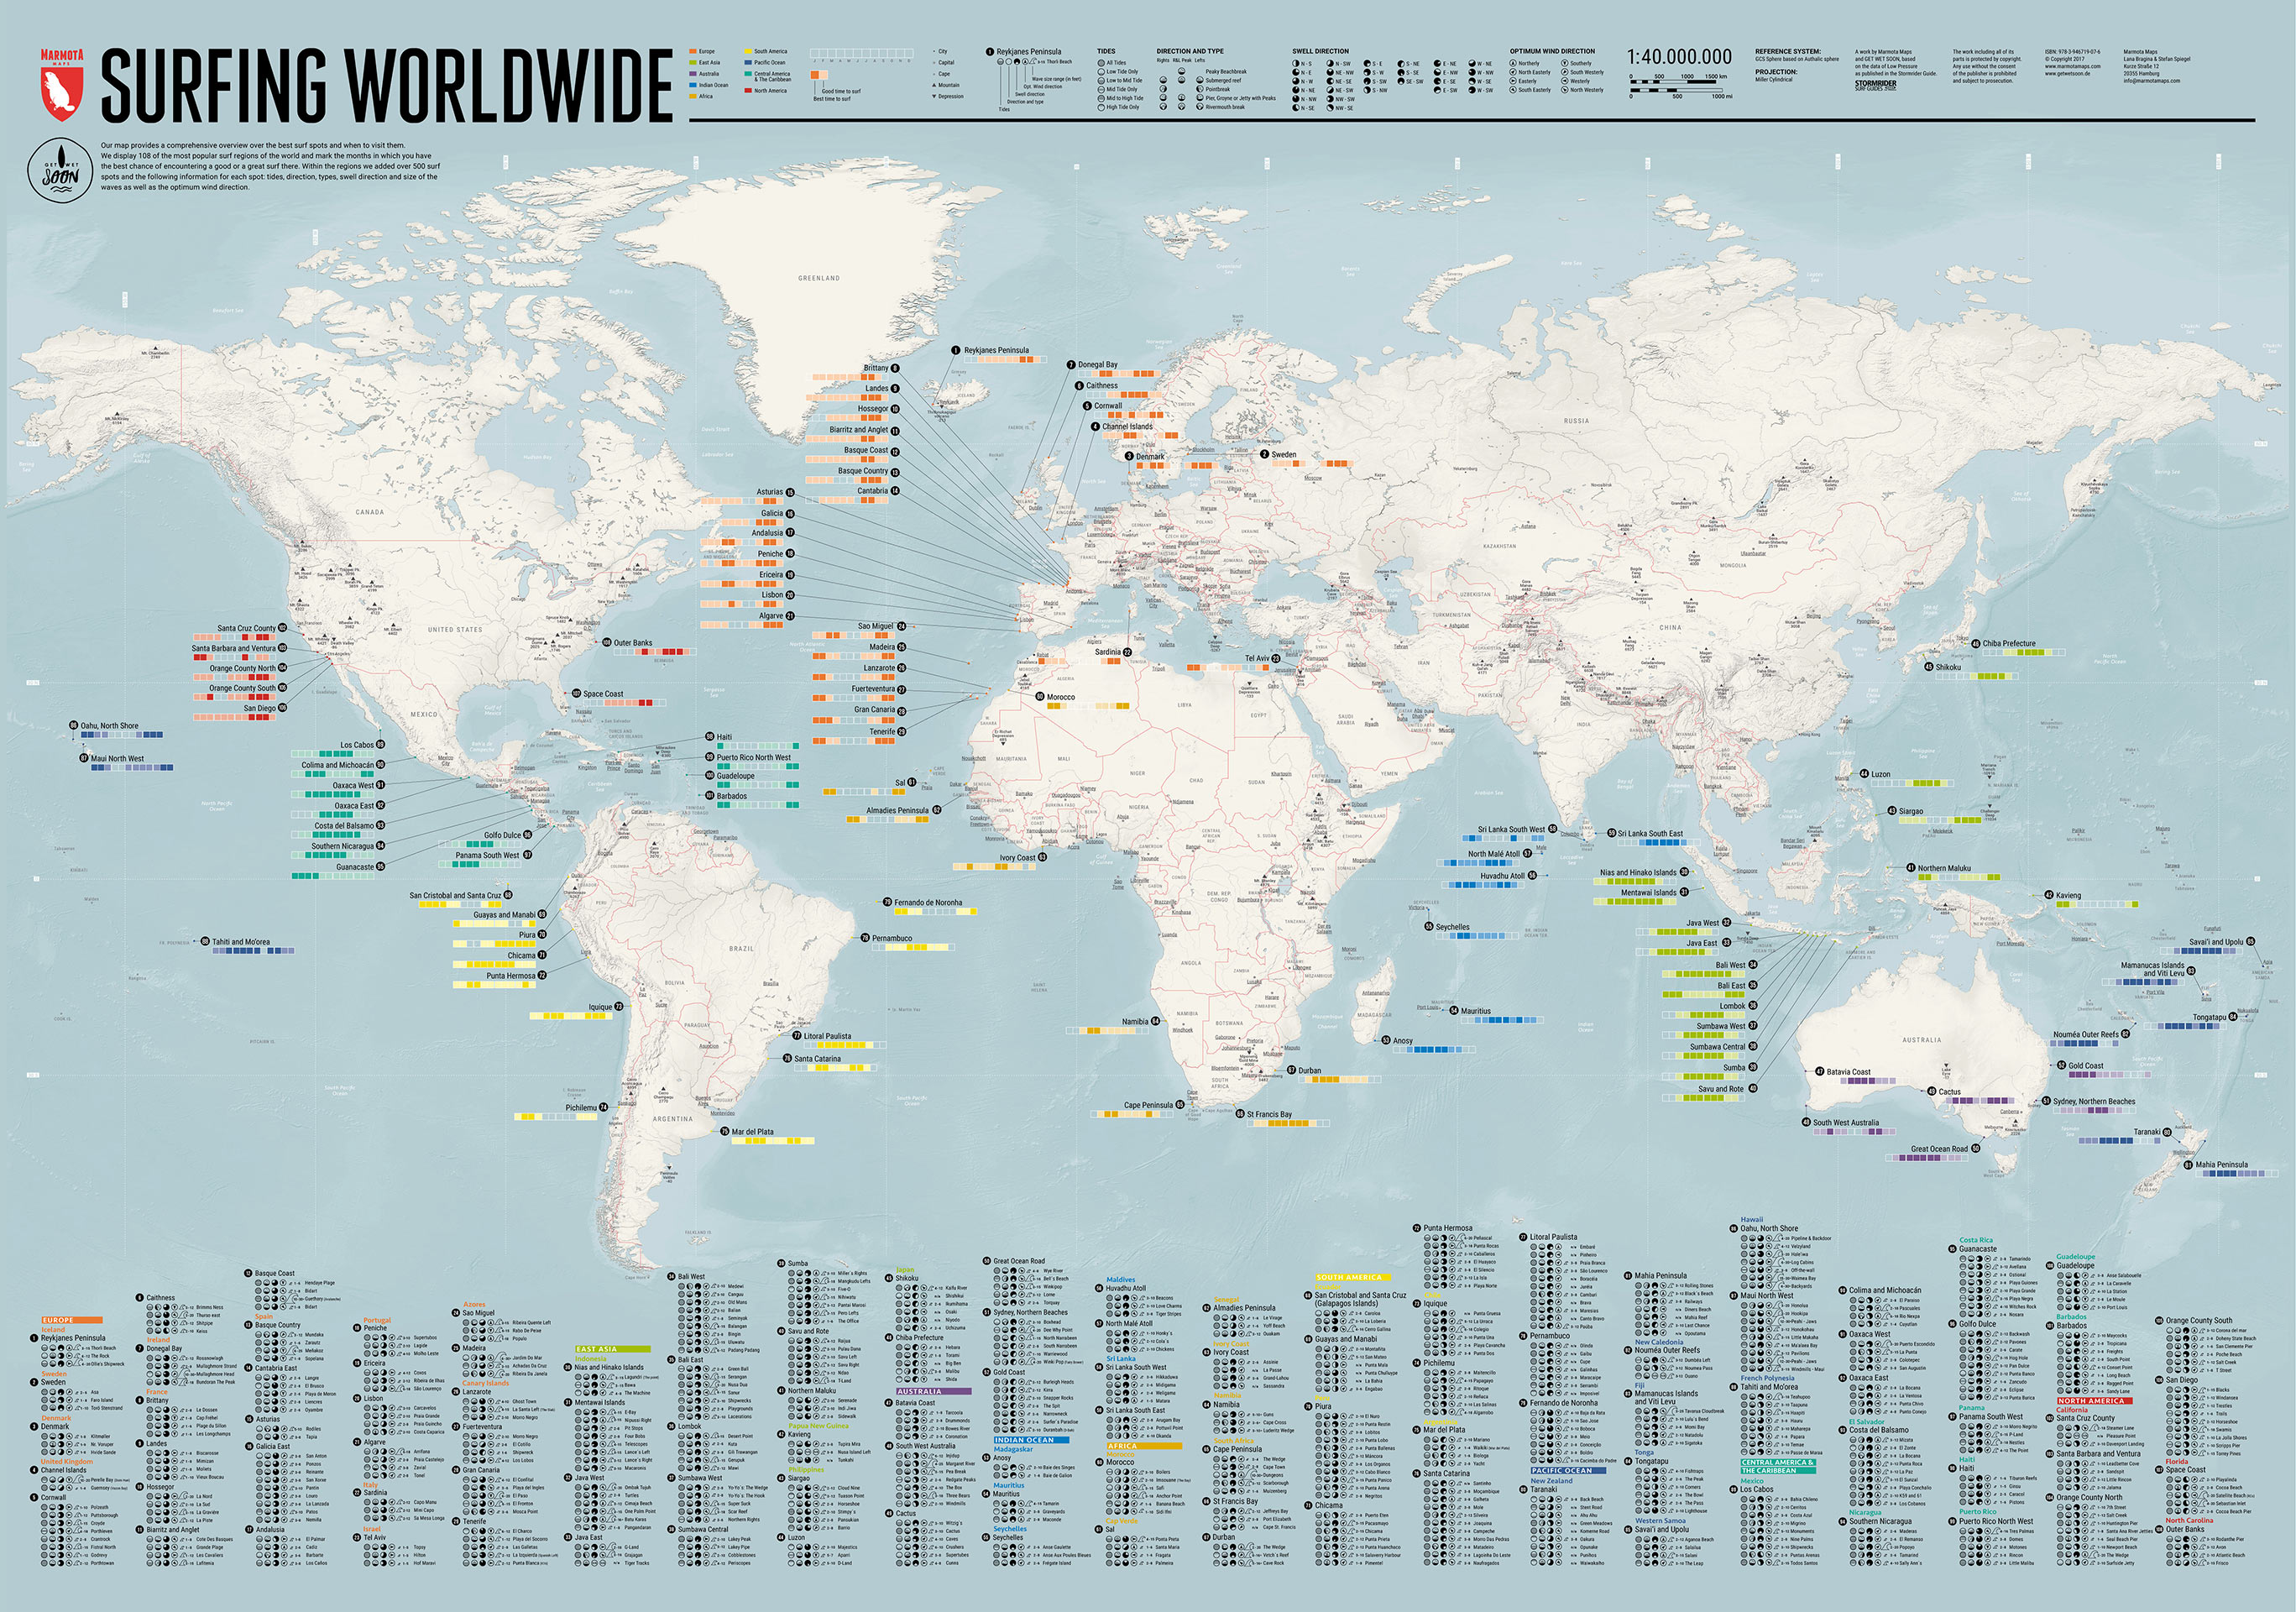 Surfing Worldwide - Weltkarte - Marmota Maps